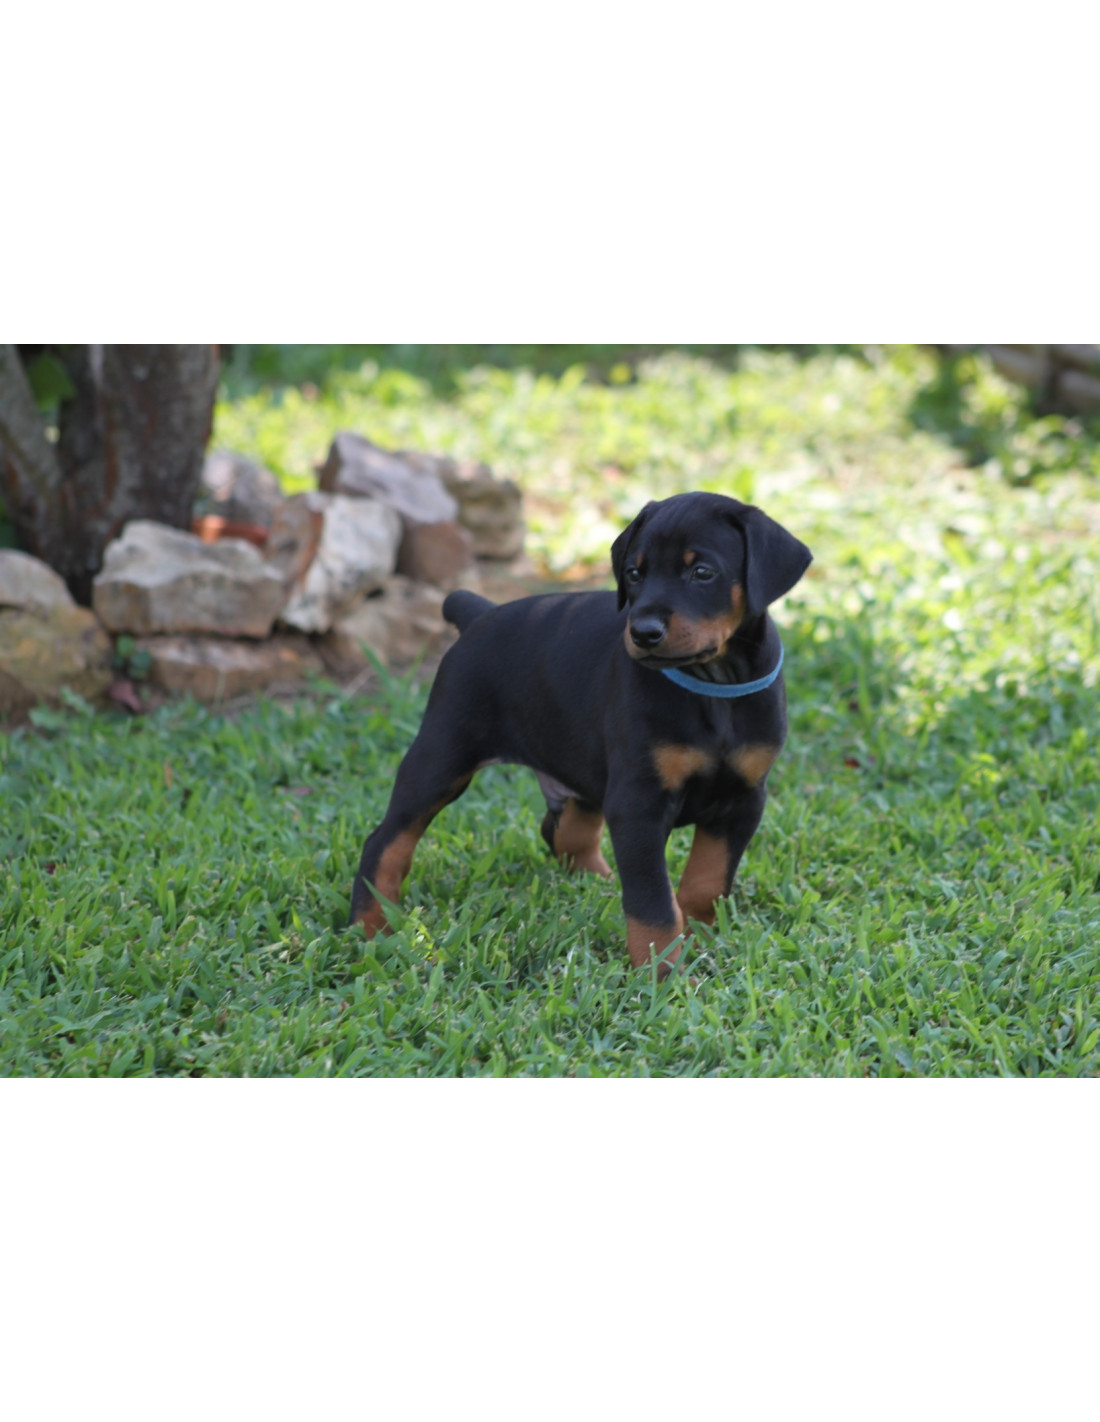 Doberman Pinscher Puppies For Sale With Best Price In India